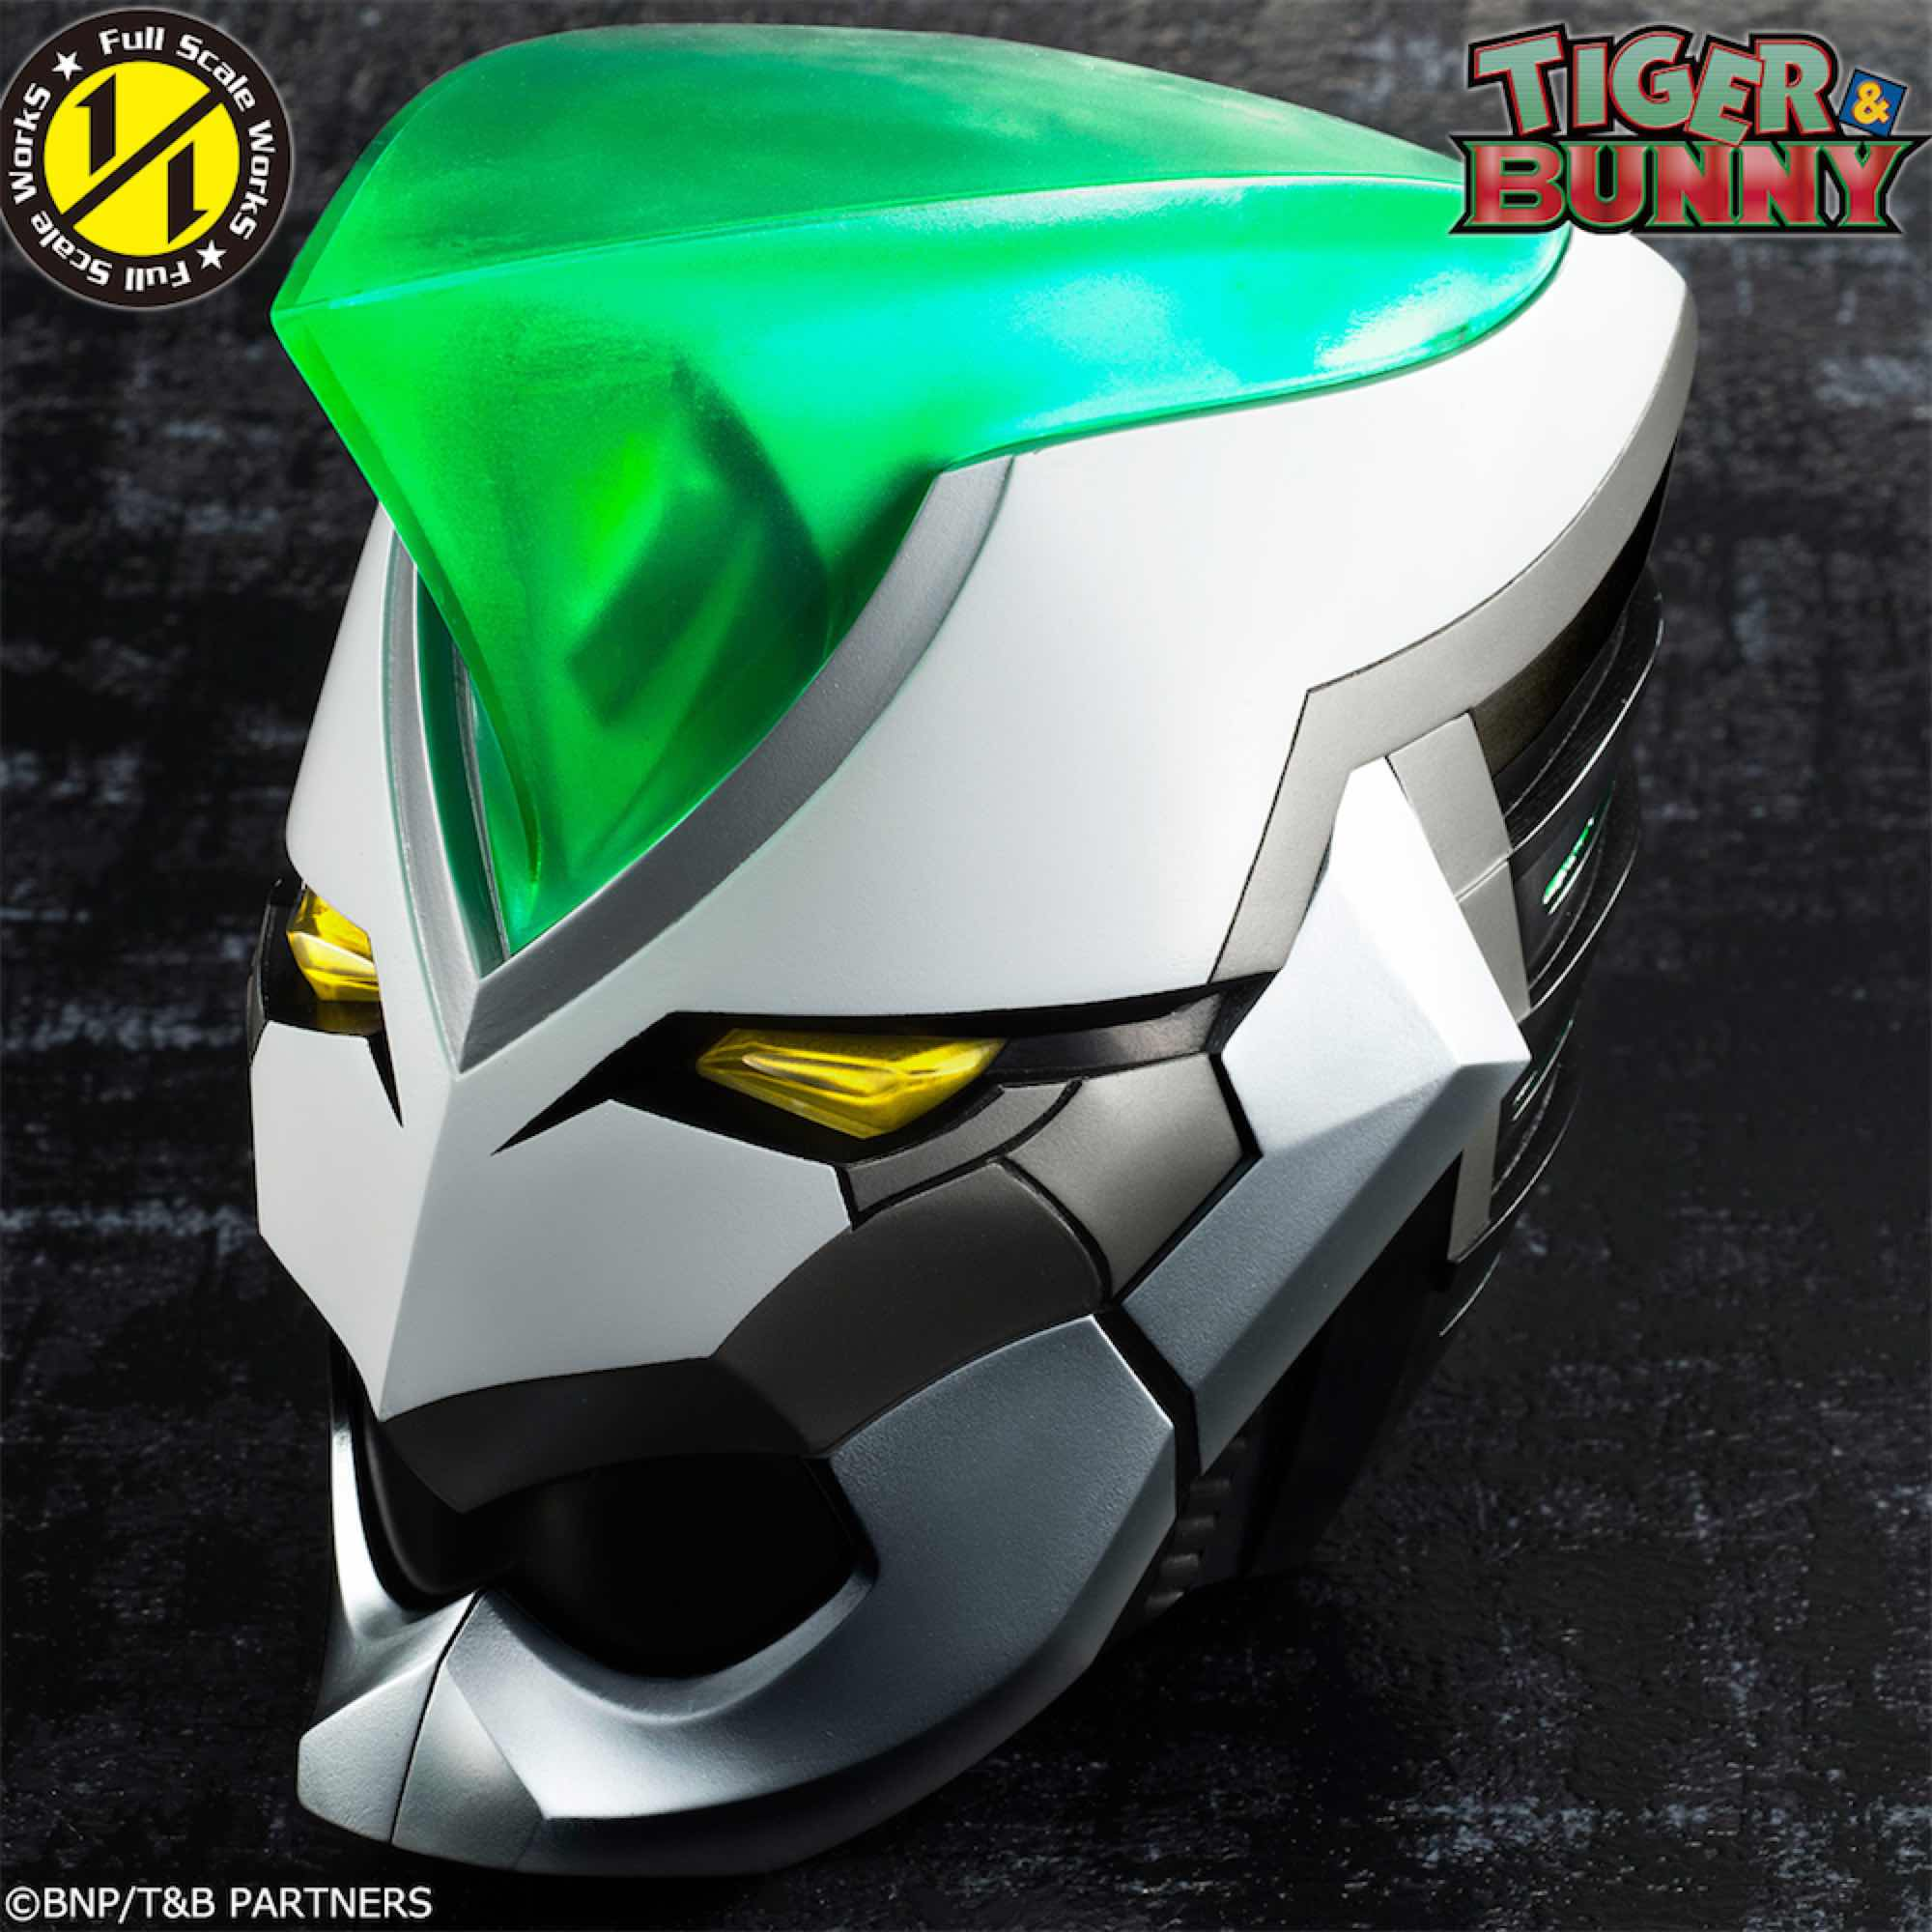 WILD TIGER FIGURA TIGER & BUNNY FULL SCALE WORKS